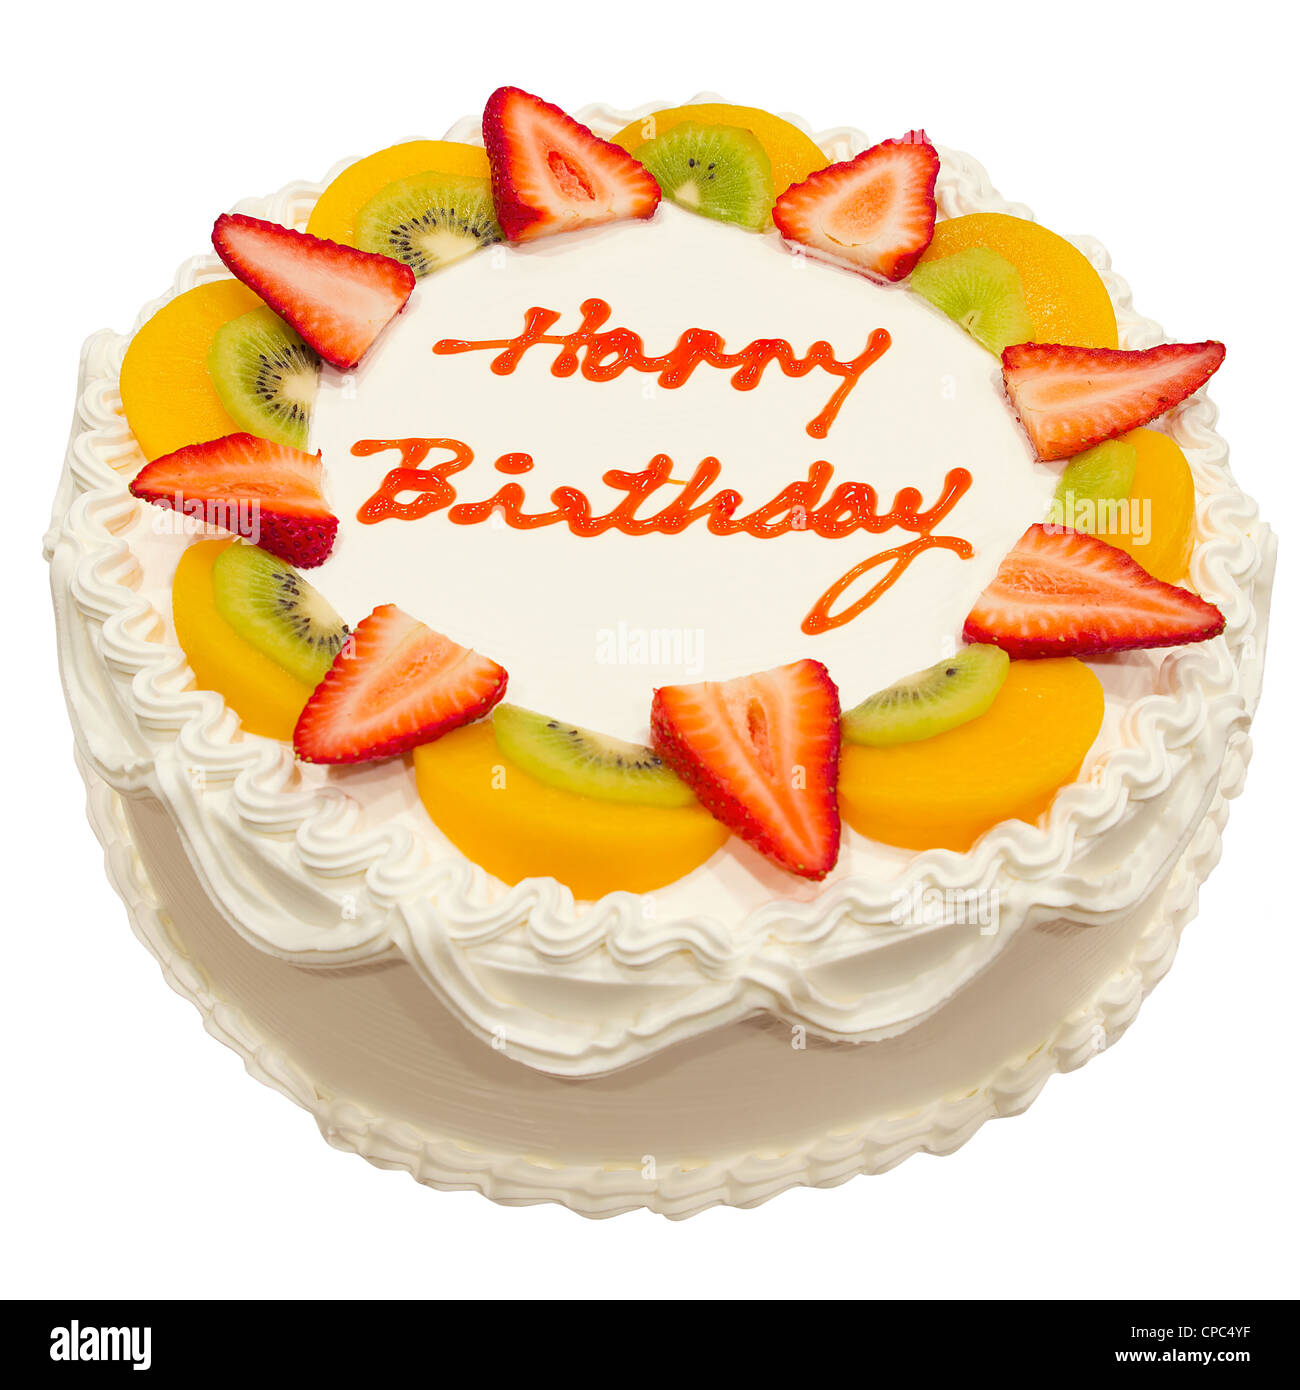 Happy Birthday Fresh Fruit Cake Isolated on White Background Stock